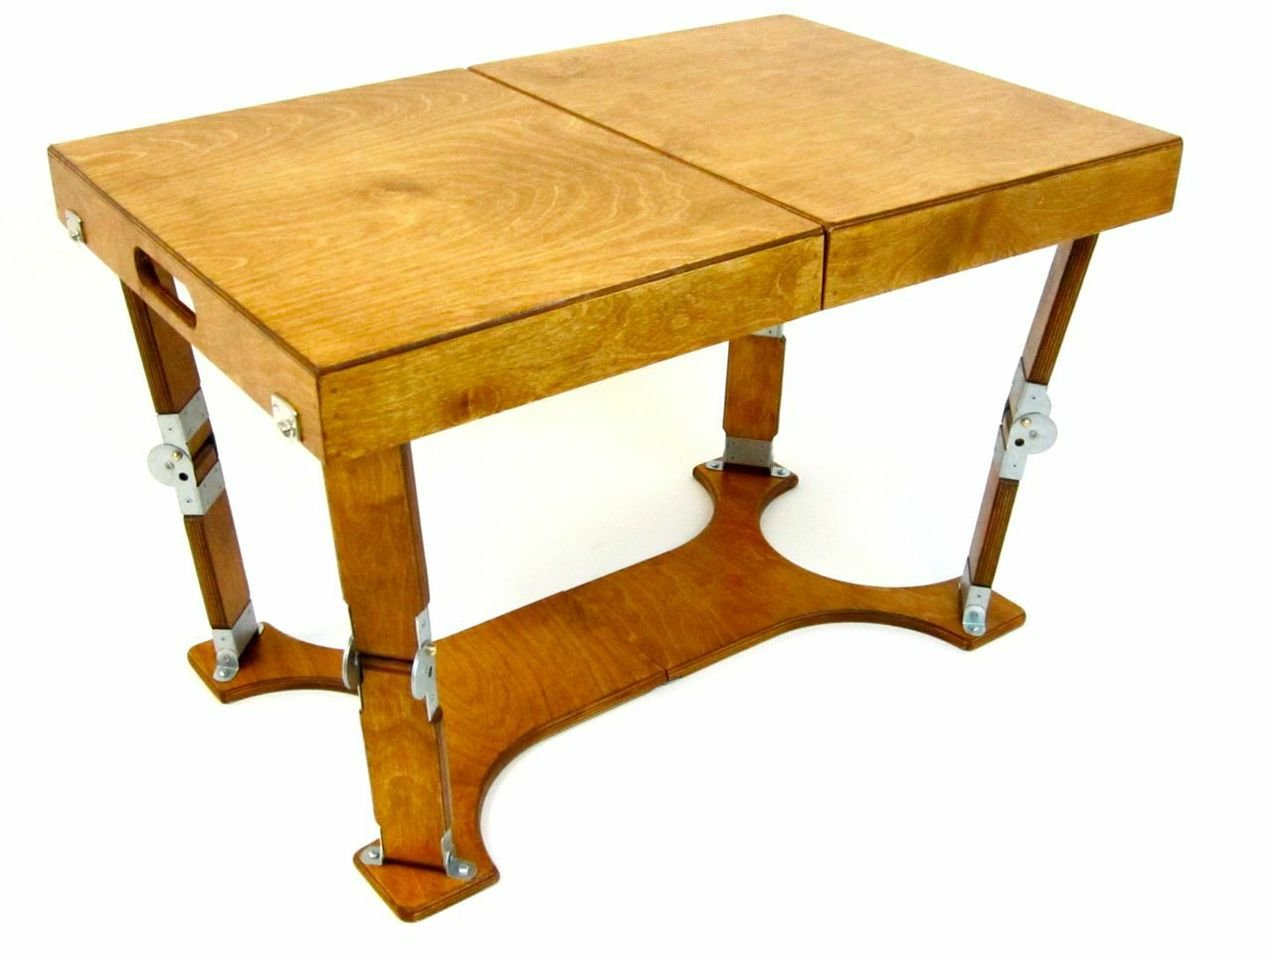 Superb Amazon.com: Spiderlegs Folding Coffee Table, 28 Inch, Warm Oak: Kitchen U0026  Dining